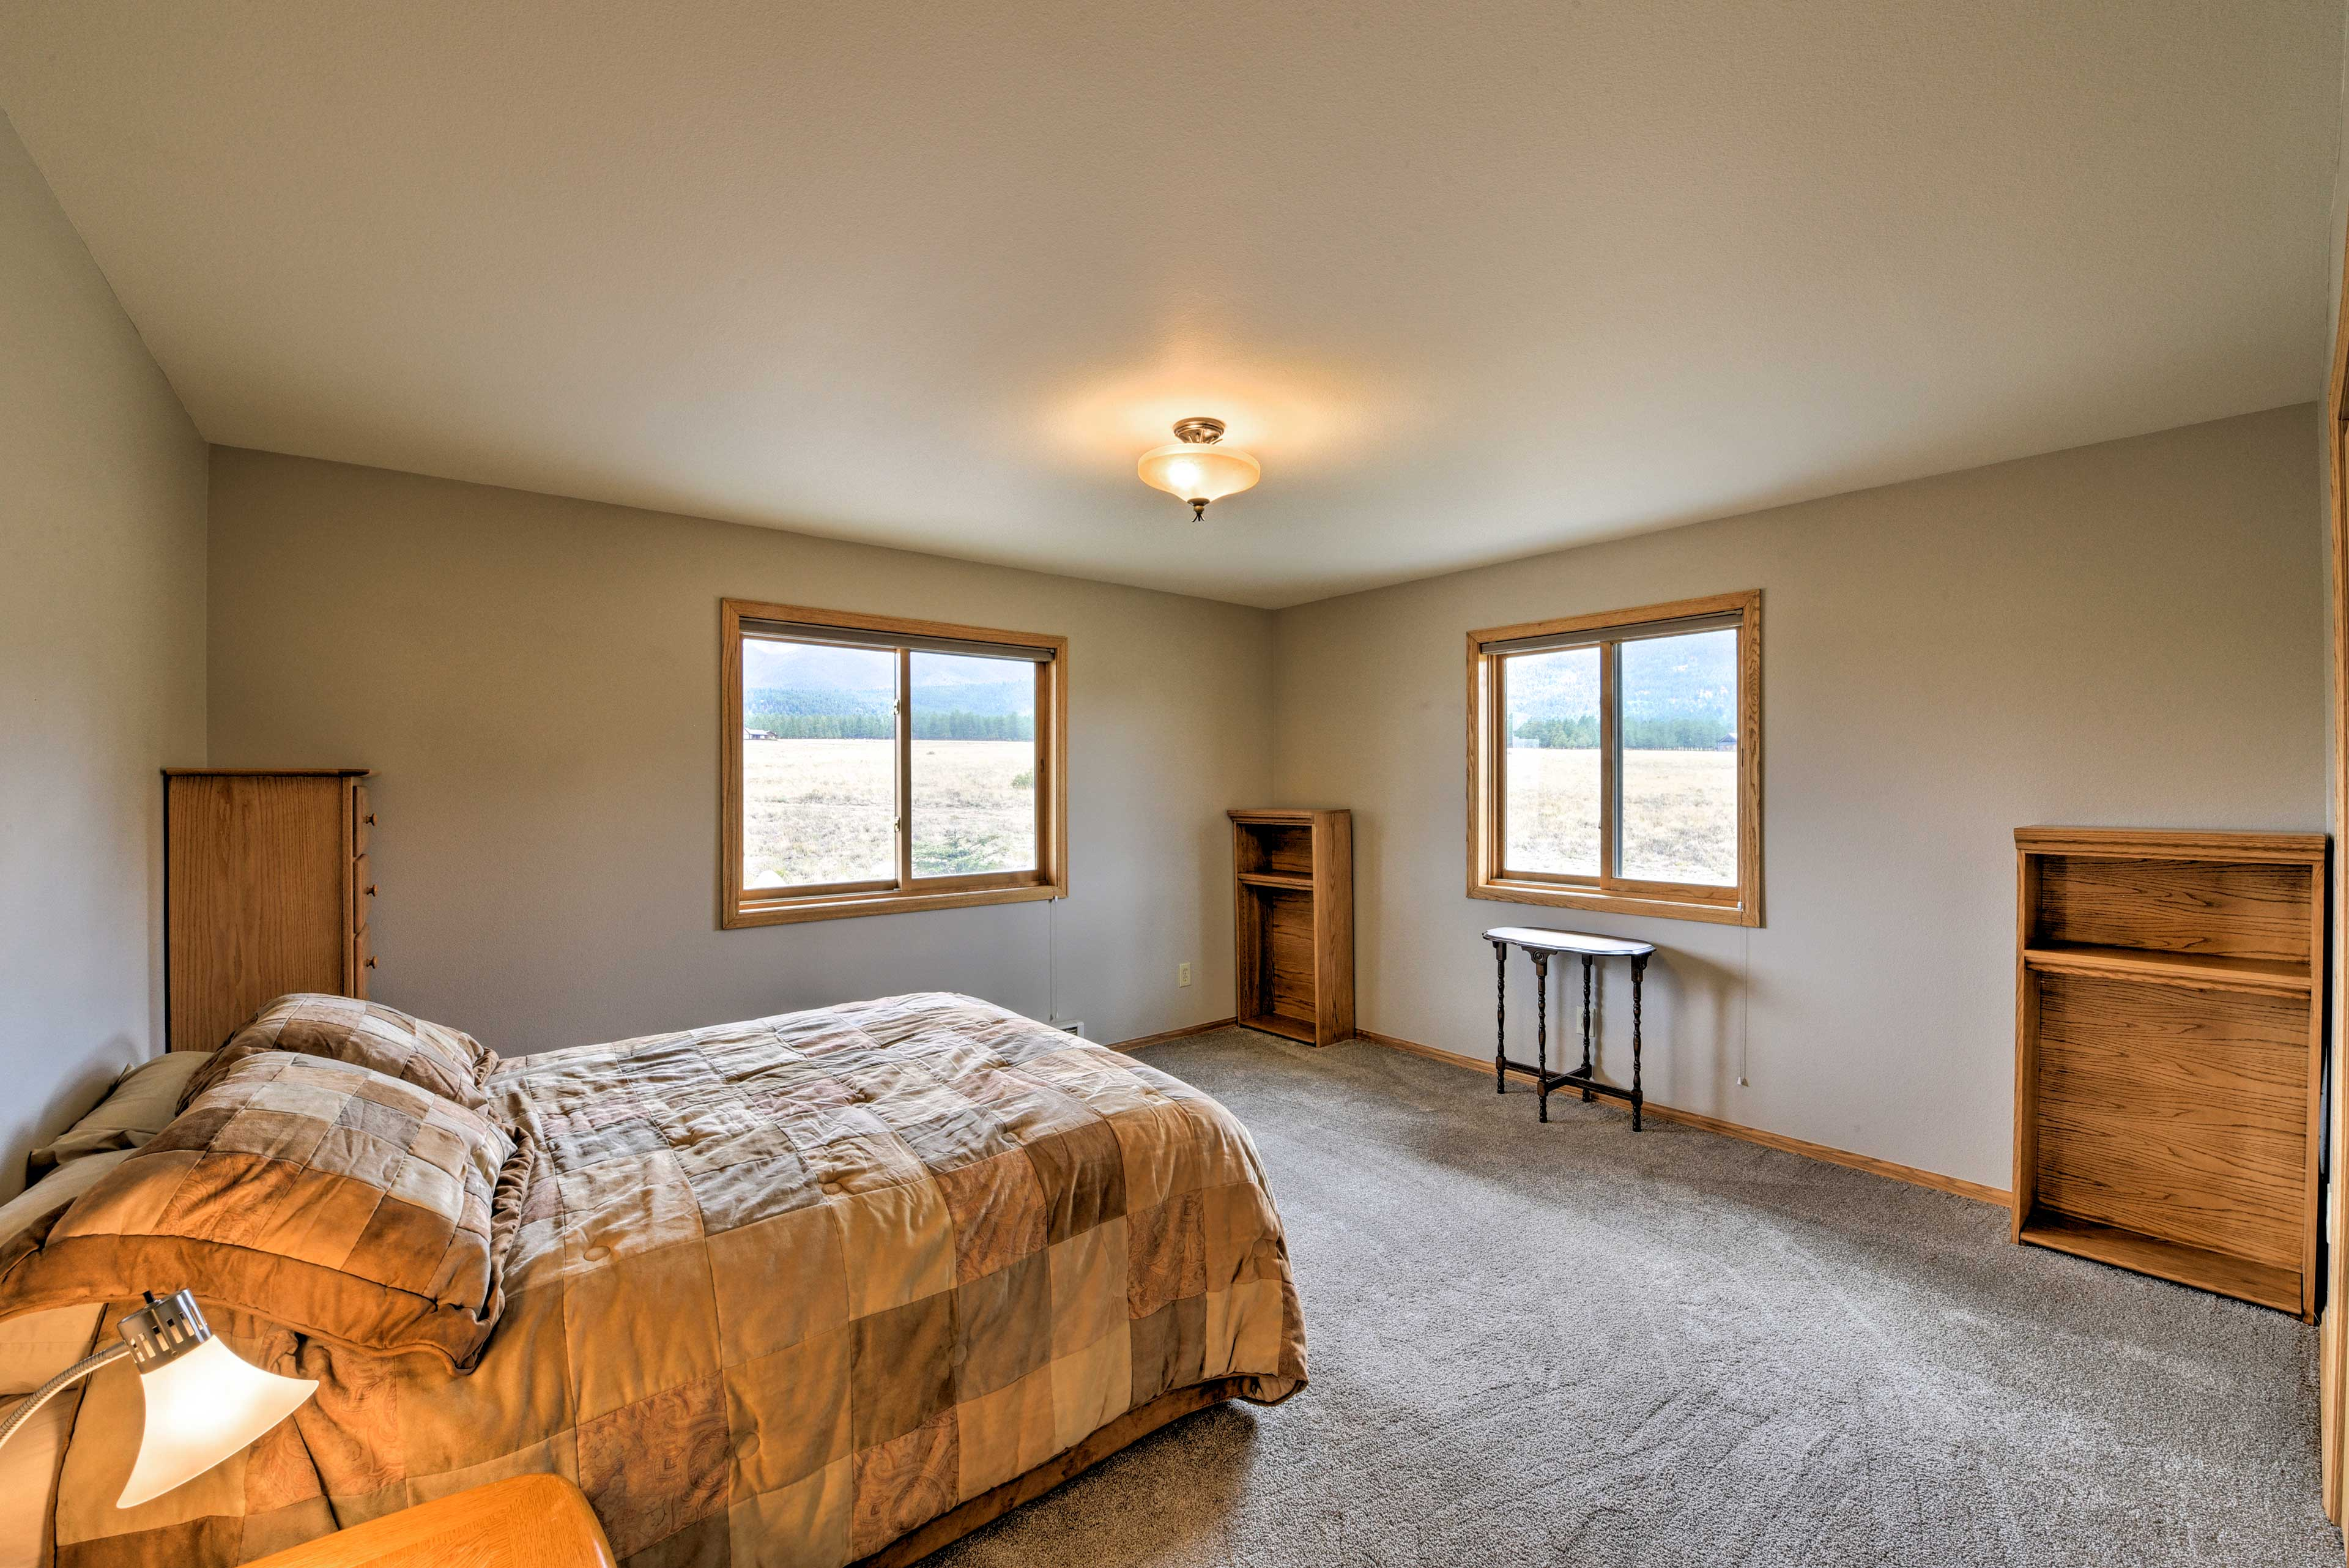 Two can share this second bedroom.